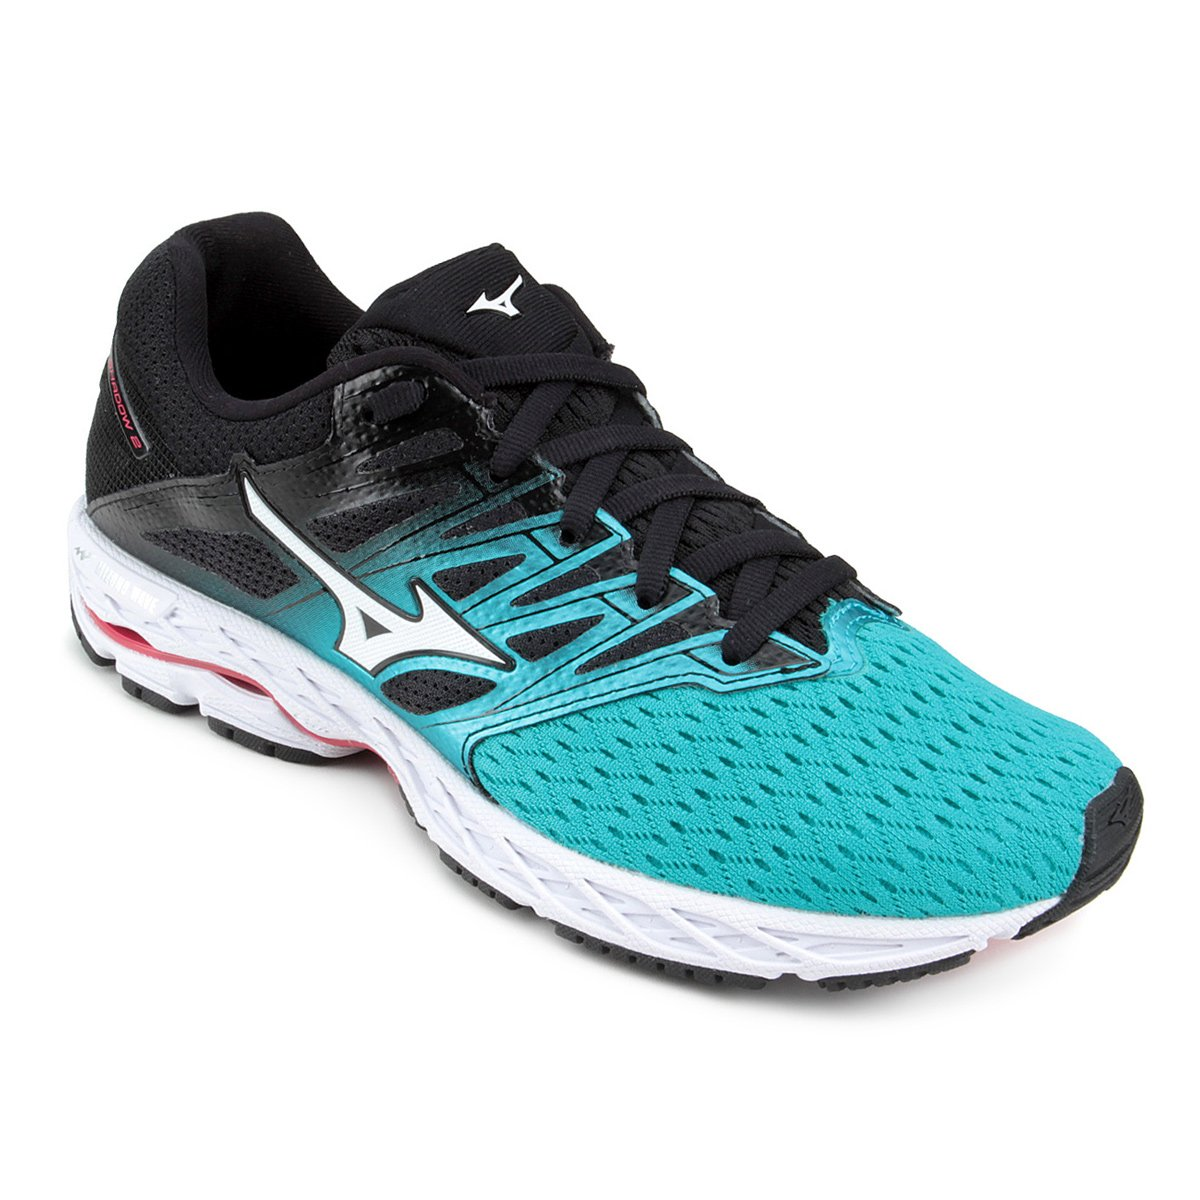 on sale 1adb0 ece71 Tênis Mizuno Wave Shadow 2 Feminino - Verde e Preto